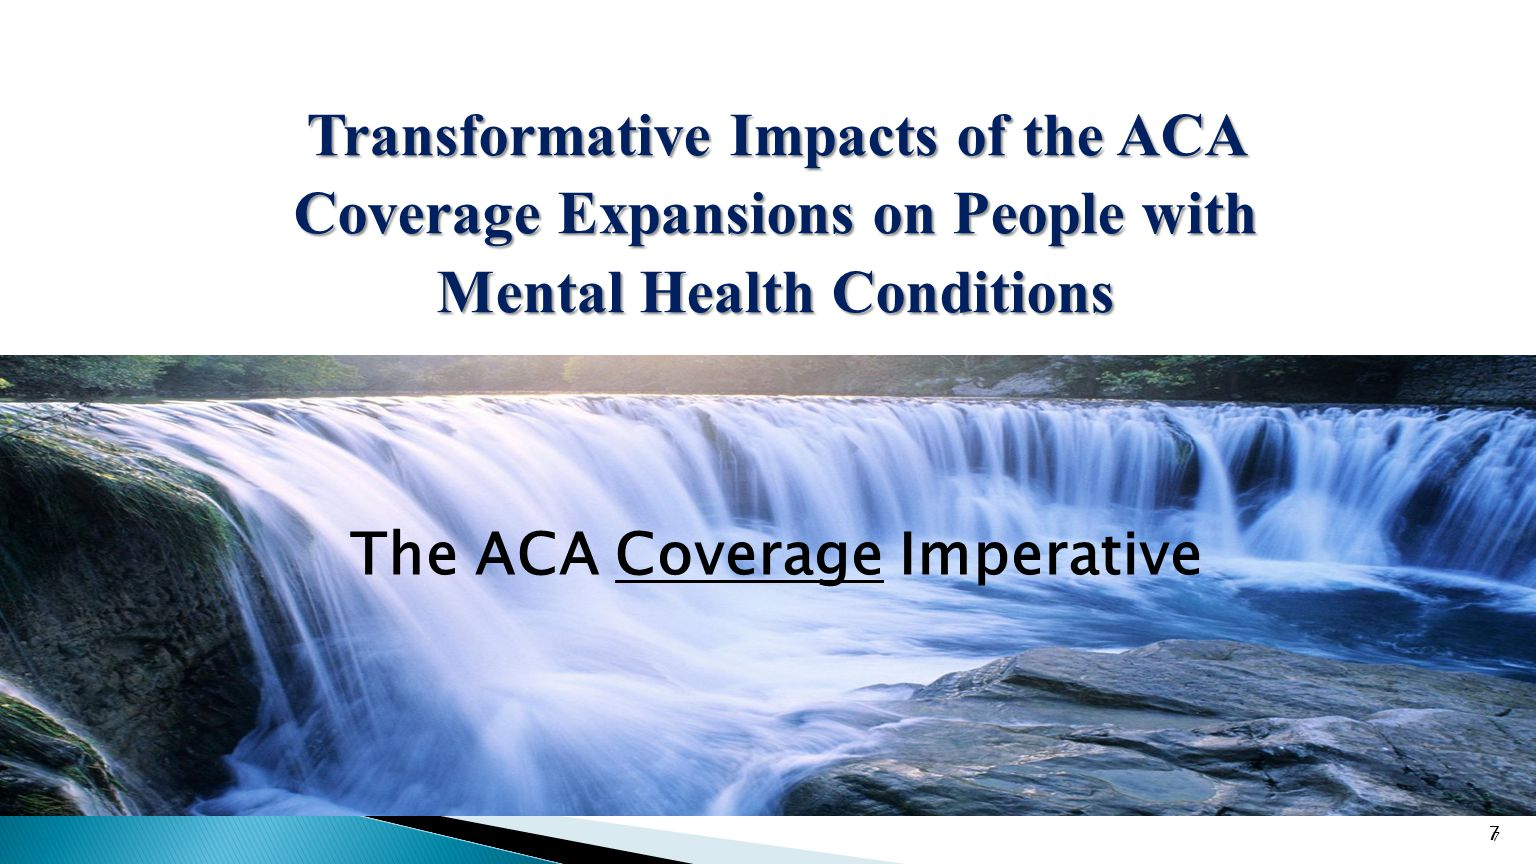 77 Transformative Impacts of the ACA Coverage Expansions on People with Mental Health Conditions 7 The ACA Coverage Imperative